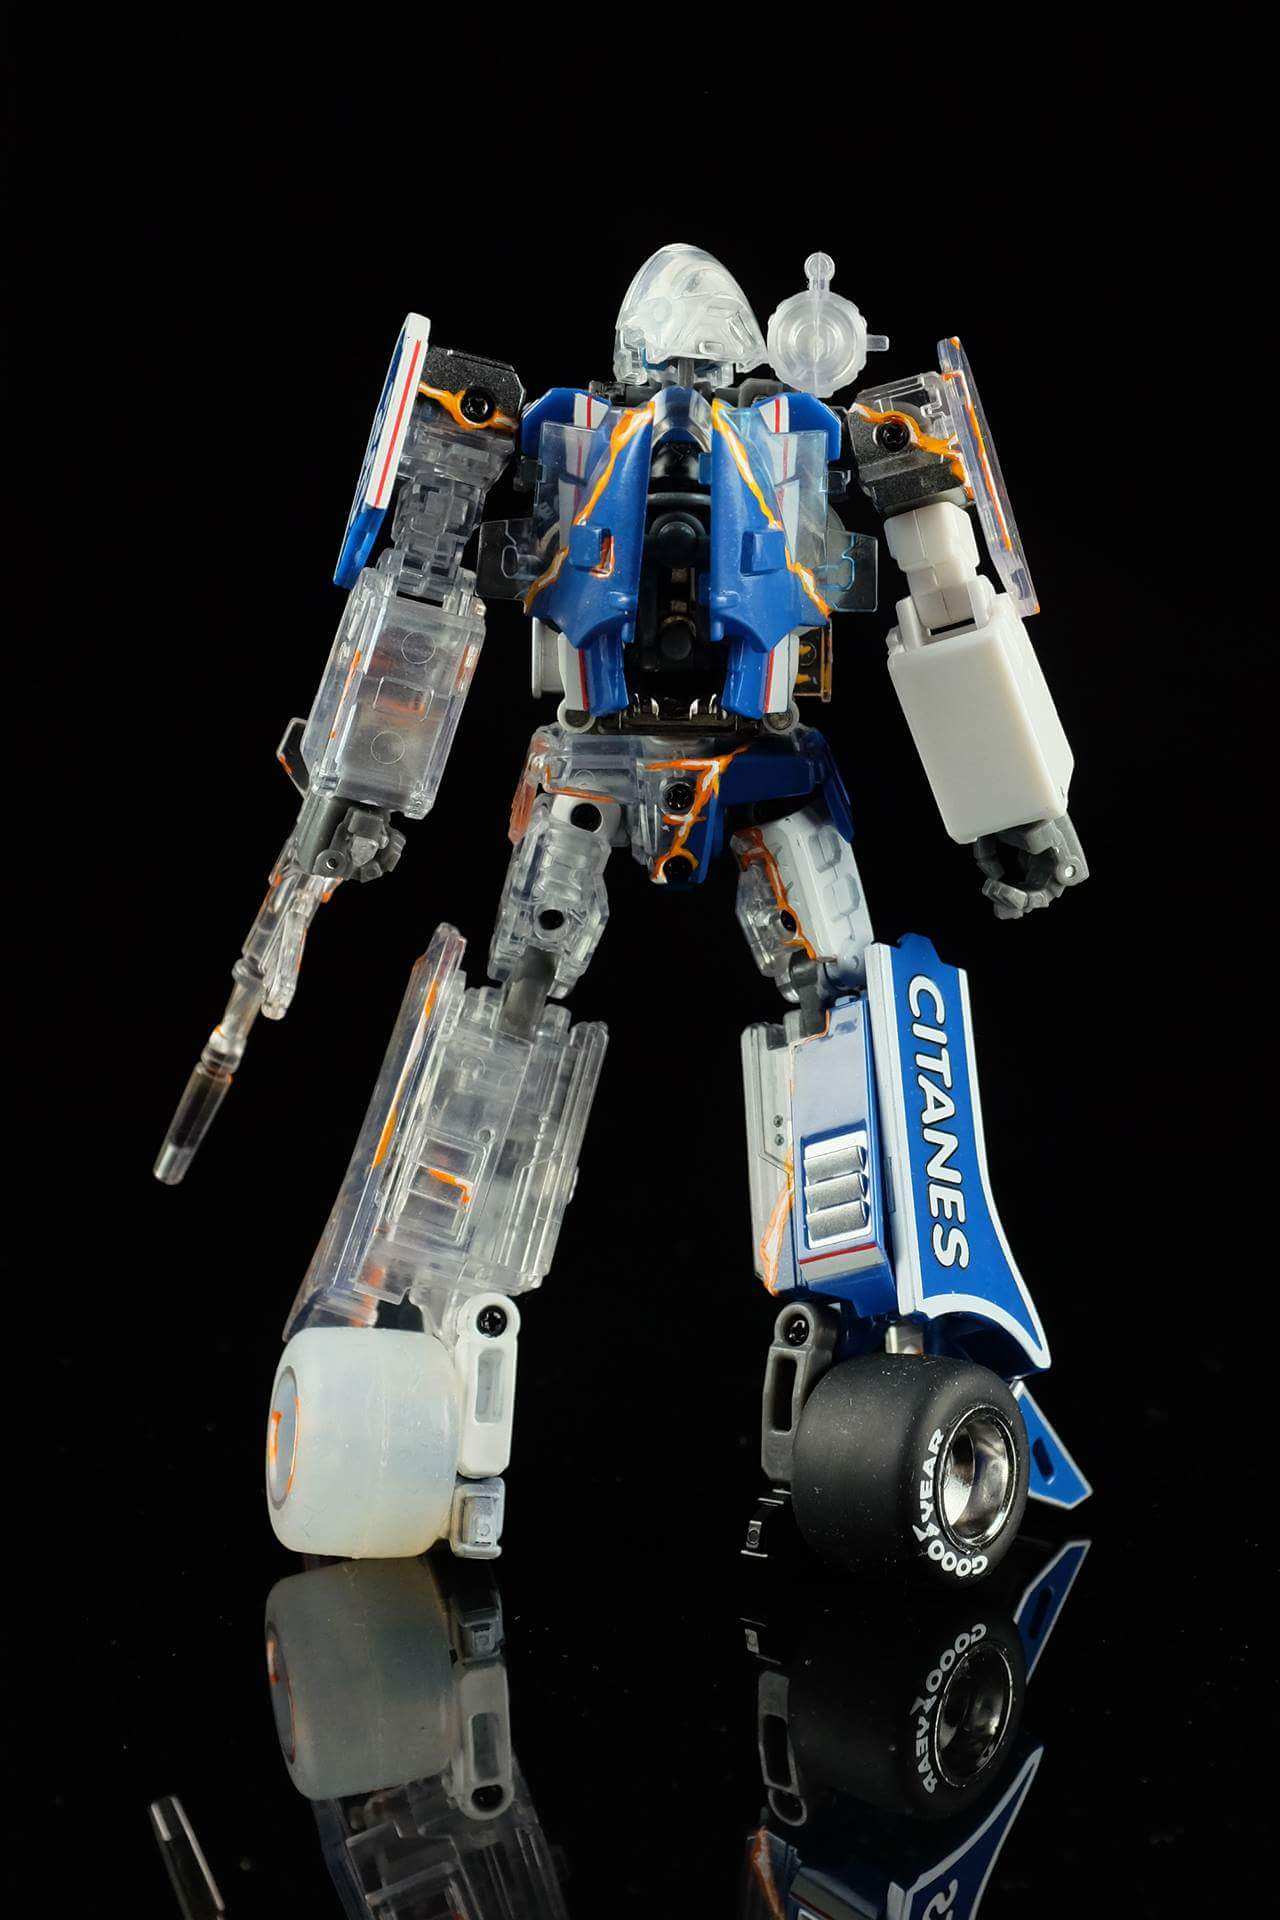 [Ocular Max] Produit Tiers - PS-01 Sphinx (aka Mirage G1) + PS-02 Liger (aka Mirage Diaclone) - Page 3 E1y5vyVo